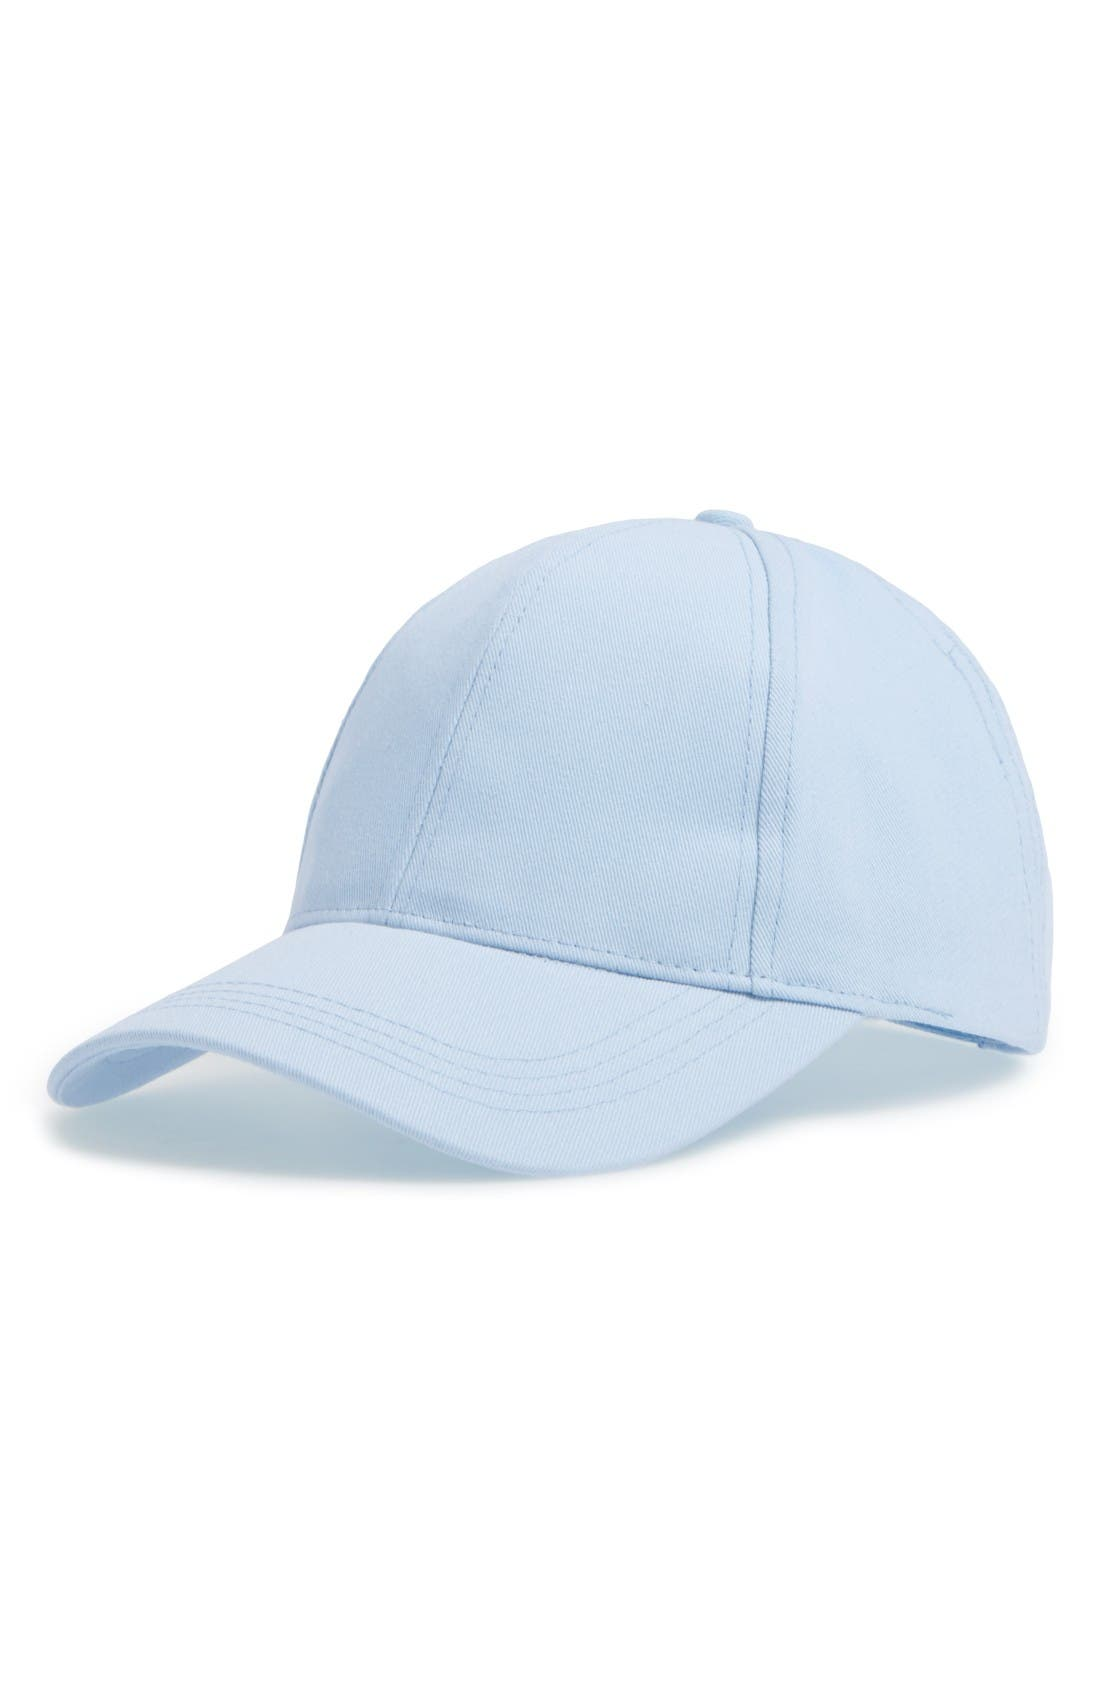 Alternate Image 1 Selected - BP. Cotton Ball Cap